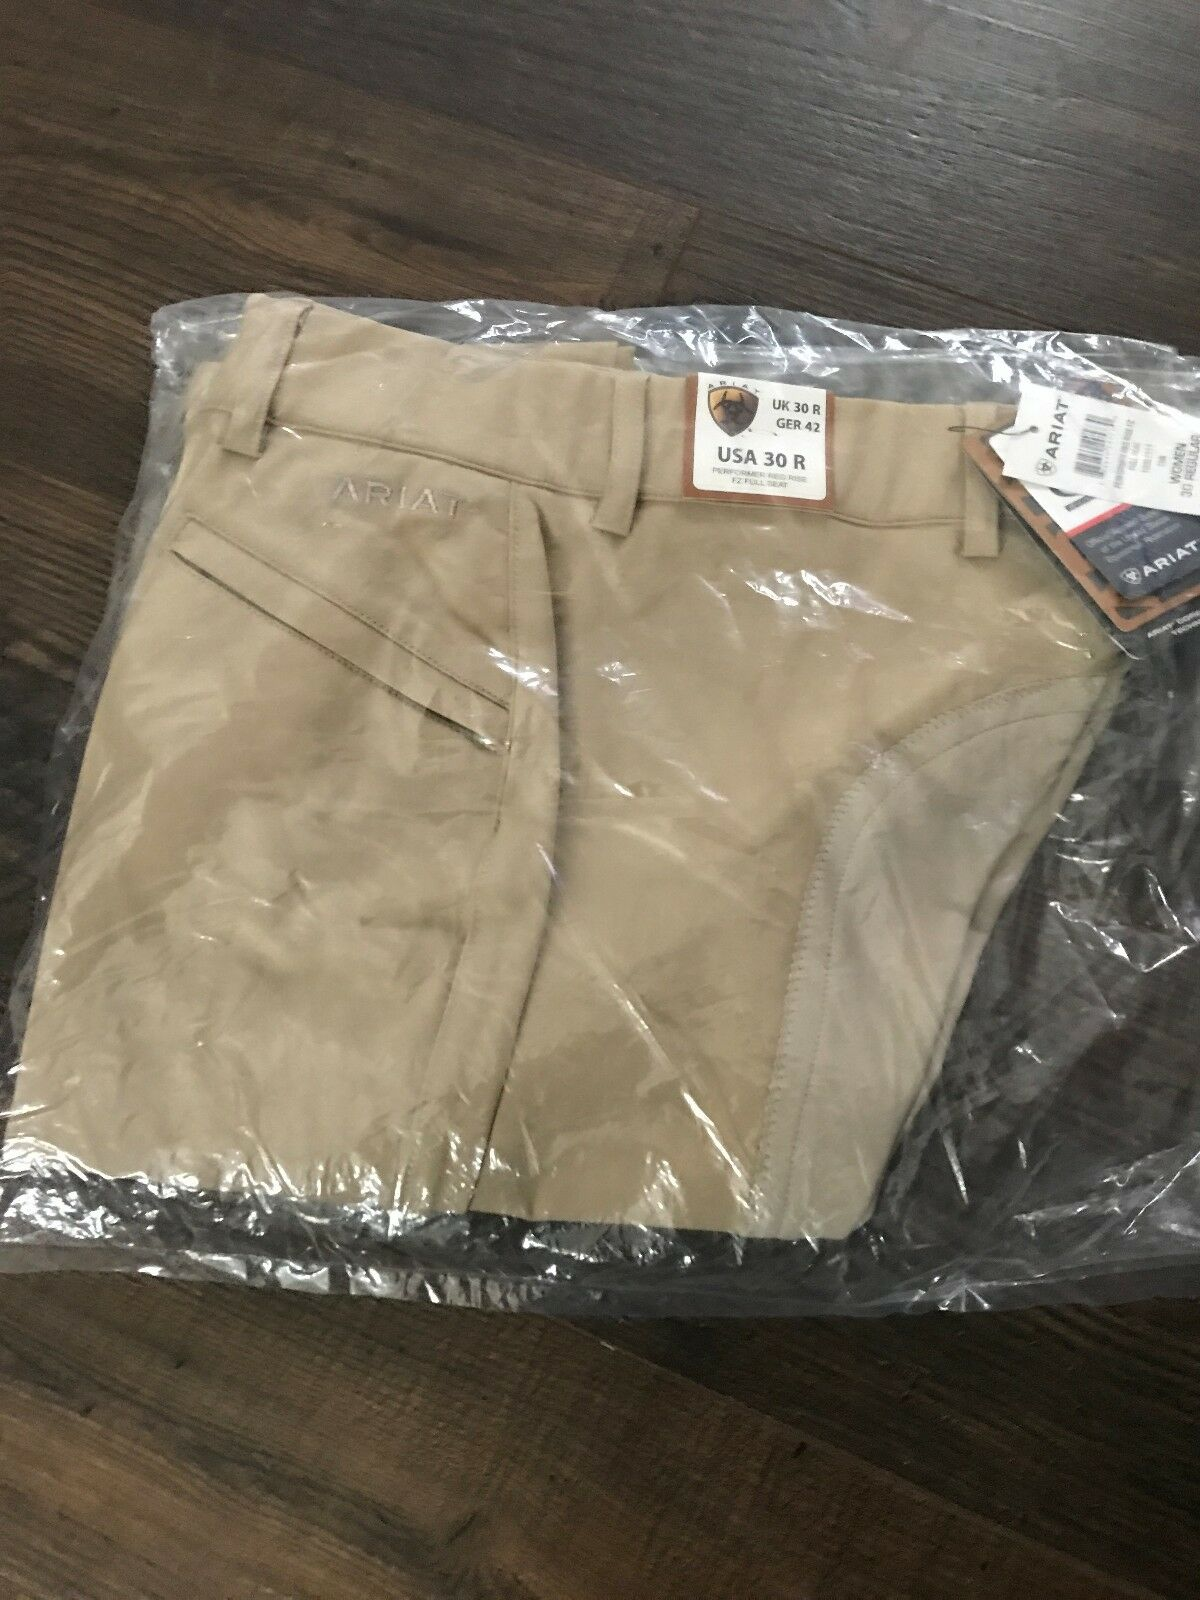 Ariat performer regular rise full seat women's riding pants size 30 regular